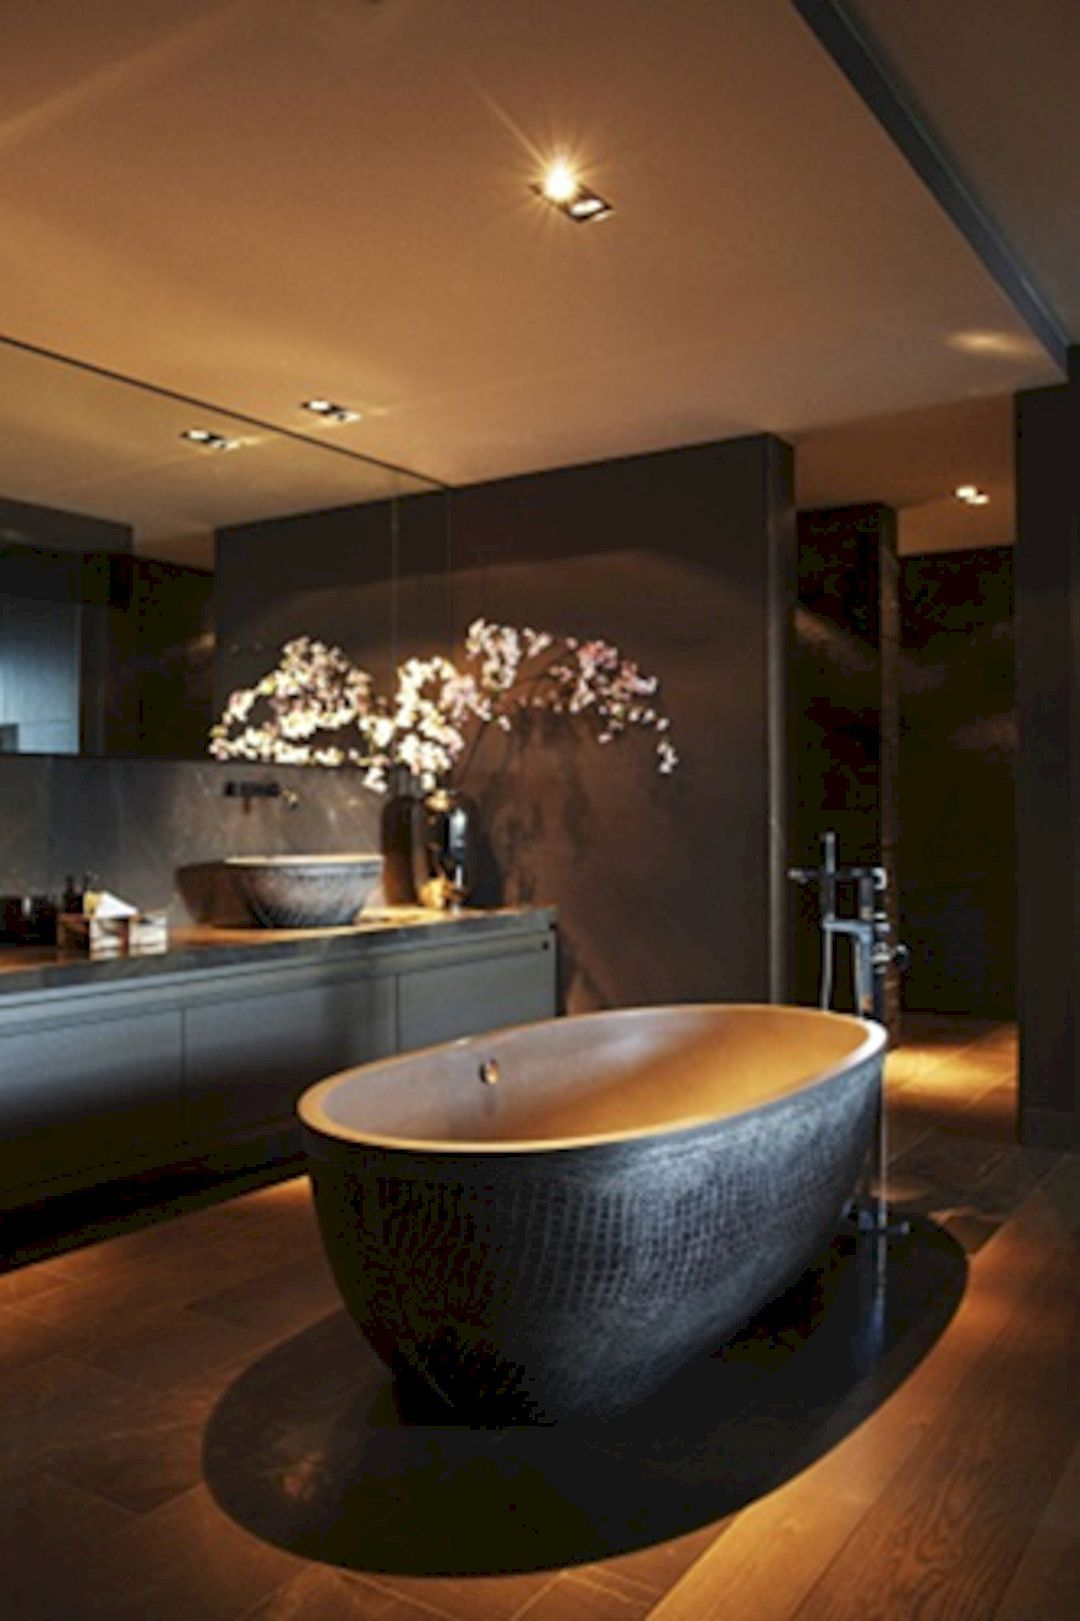 20 Awesome Modern Interior Design Ideas With Images Bathroom